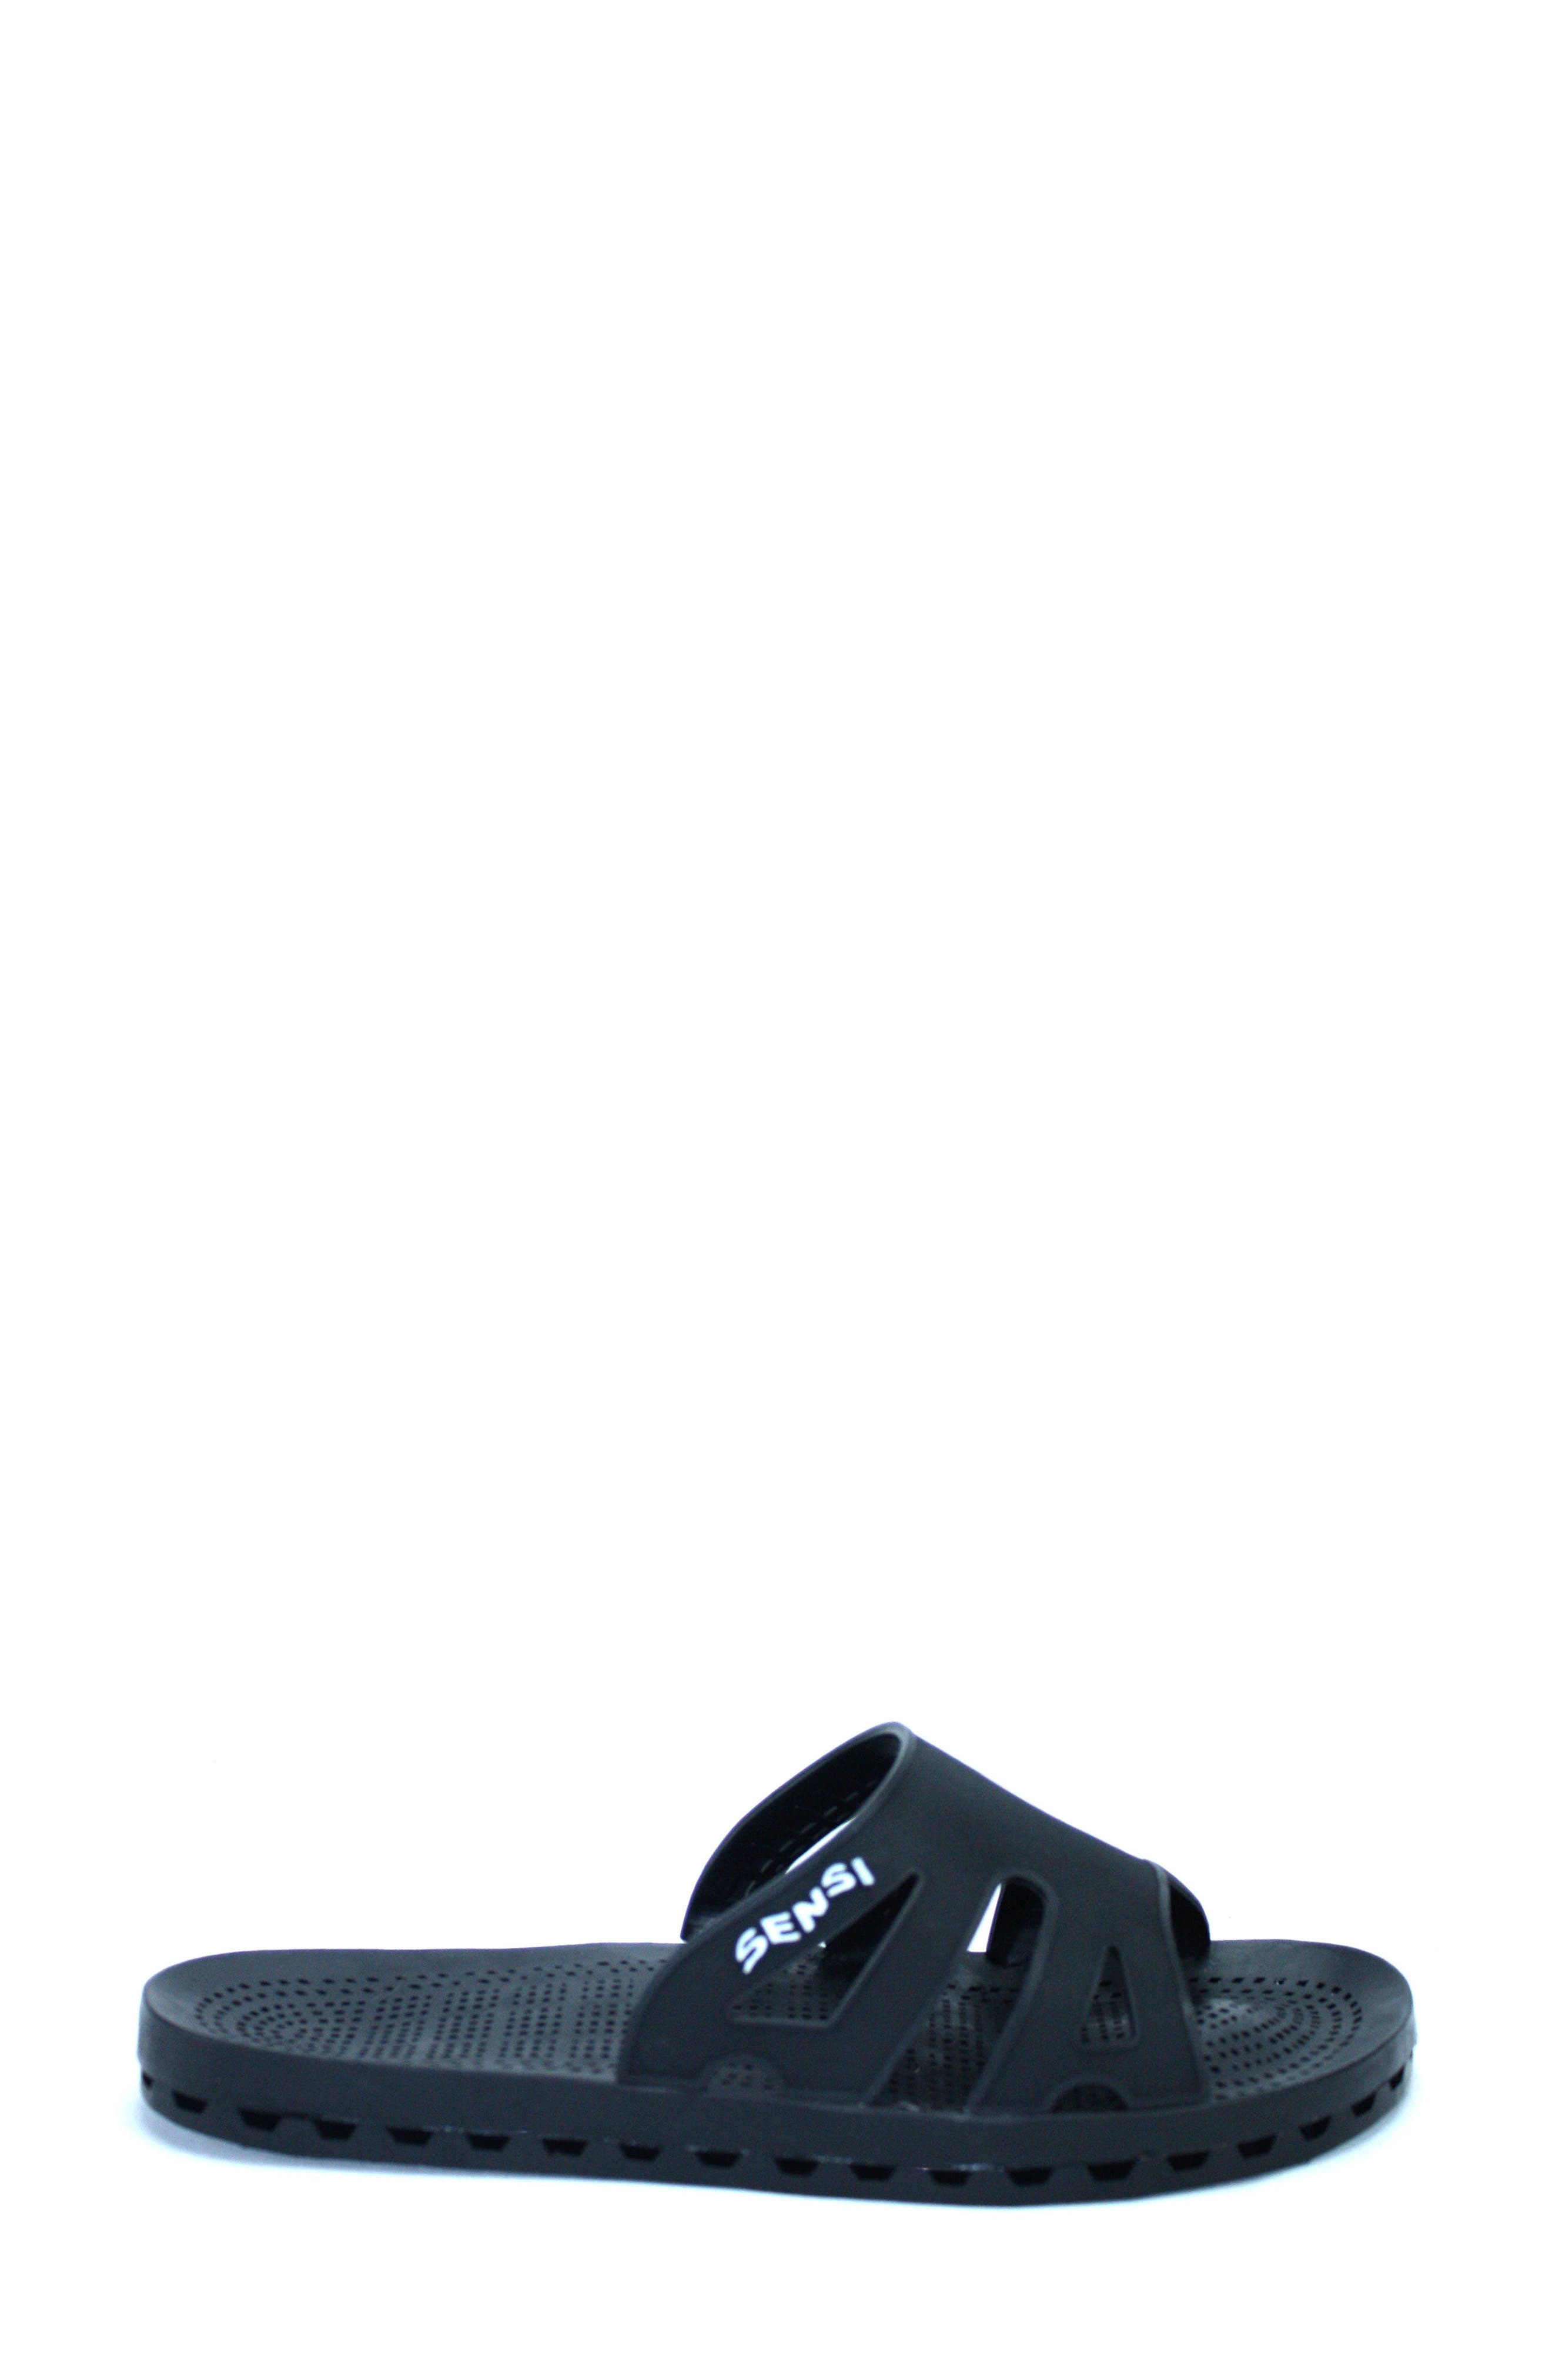 SENSI,                             Regatta Slide Sandal,                             Alternate thumbnail 3, color,                             001